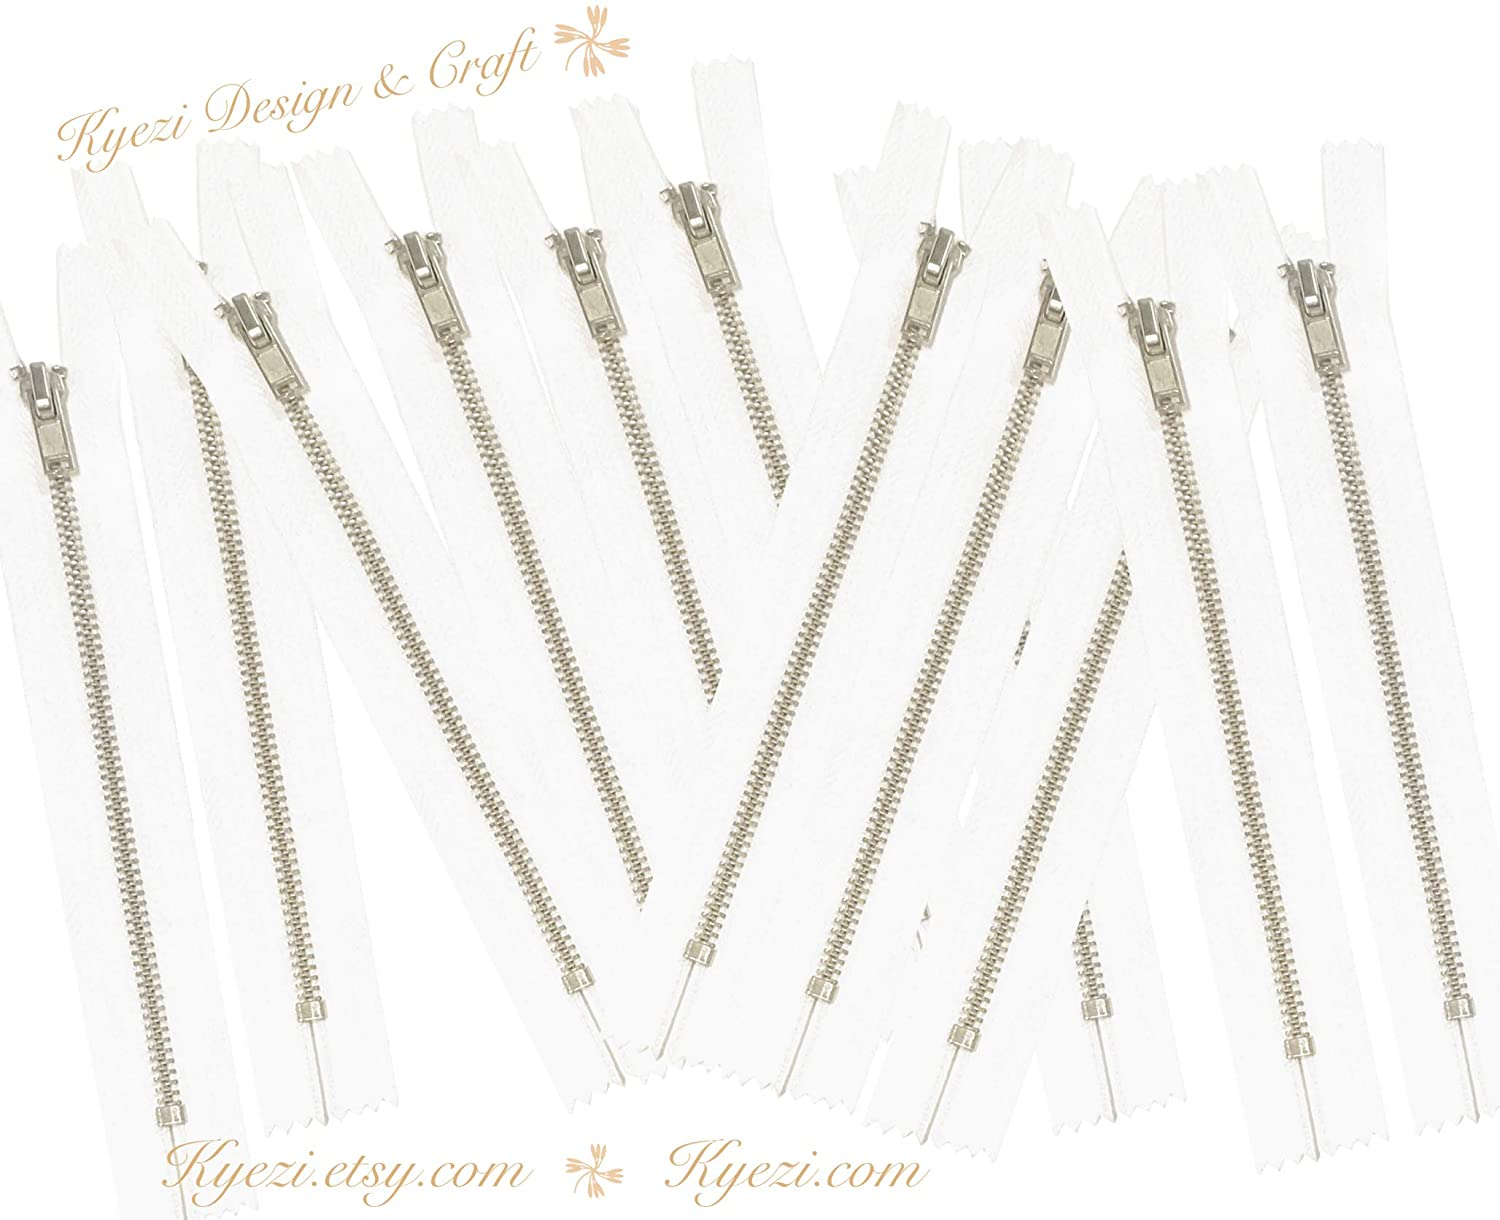 10 pcs Silver Metal Teeth #3 Teeth Zippers - Fast Shipping [Kyezi Design & Craft] (Off White, 6 inch)